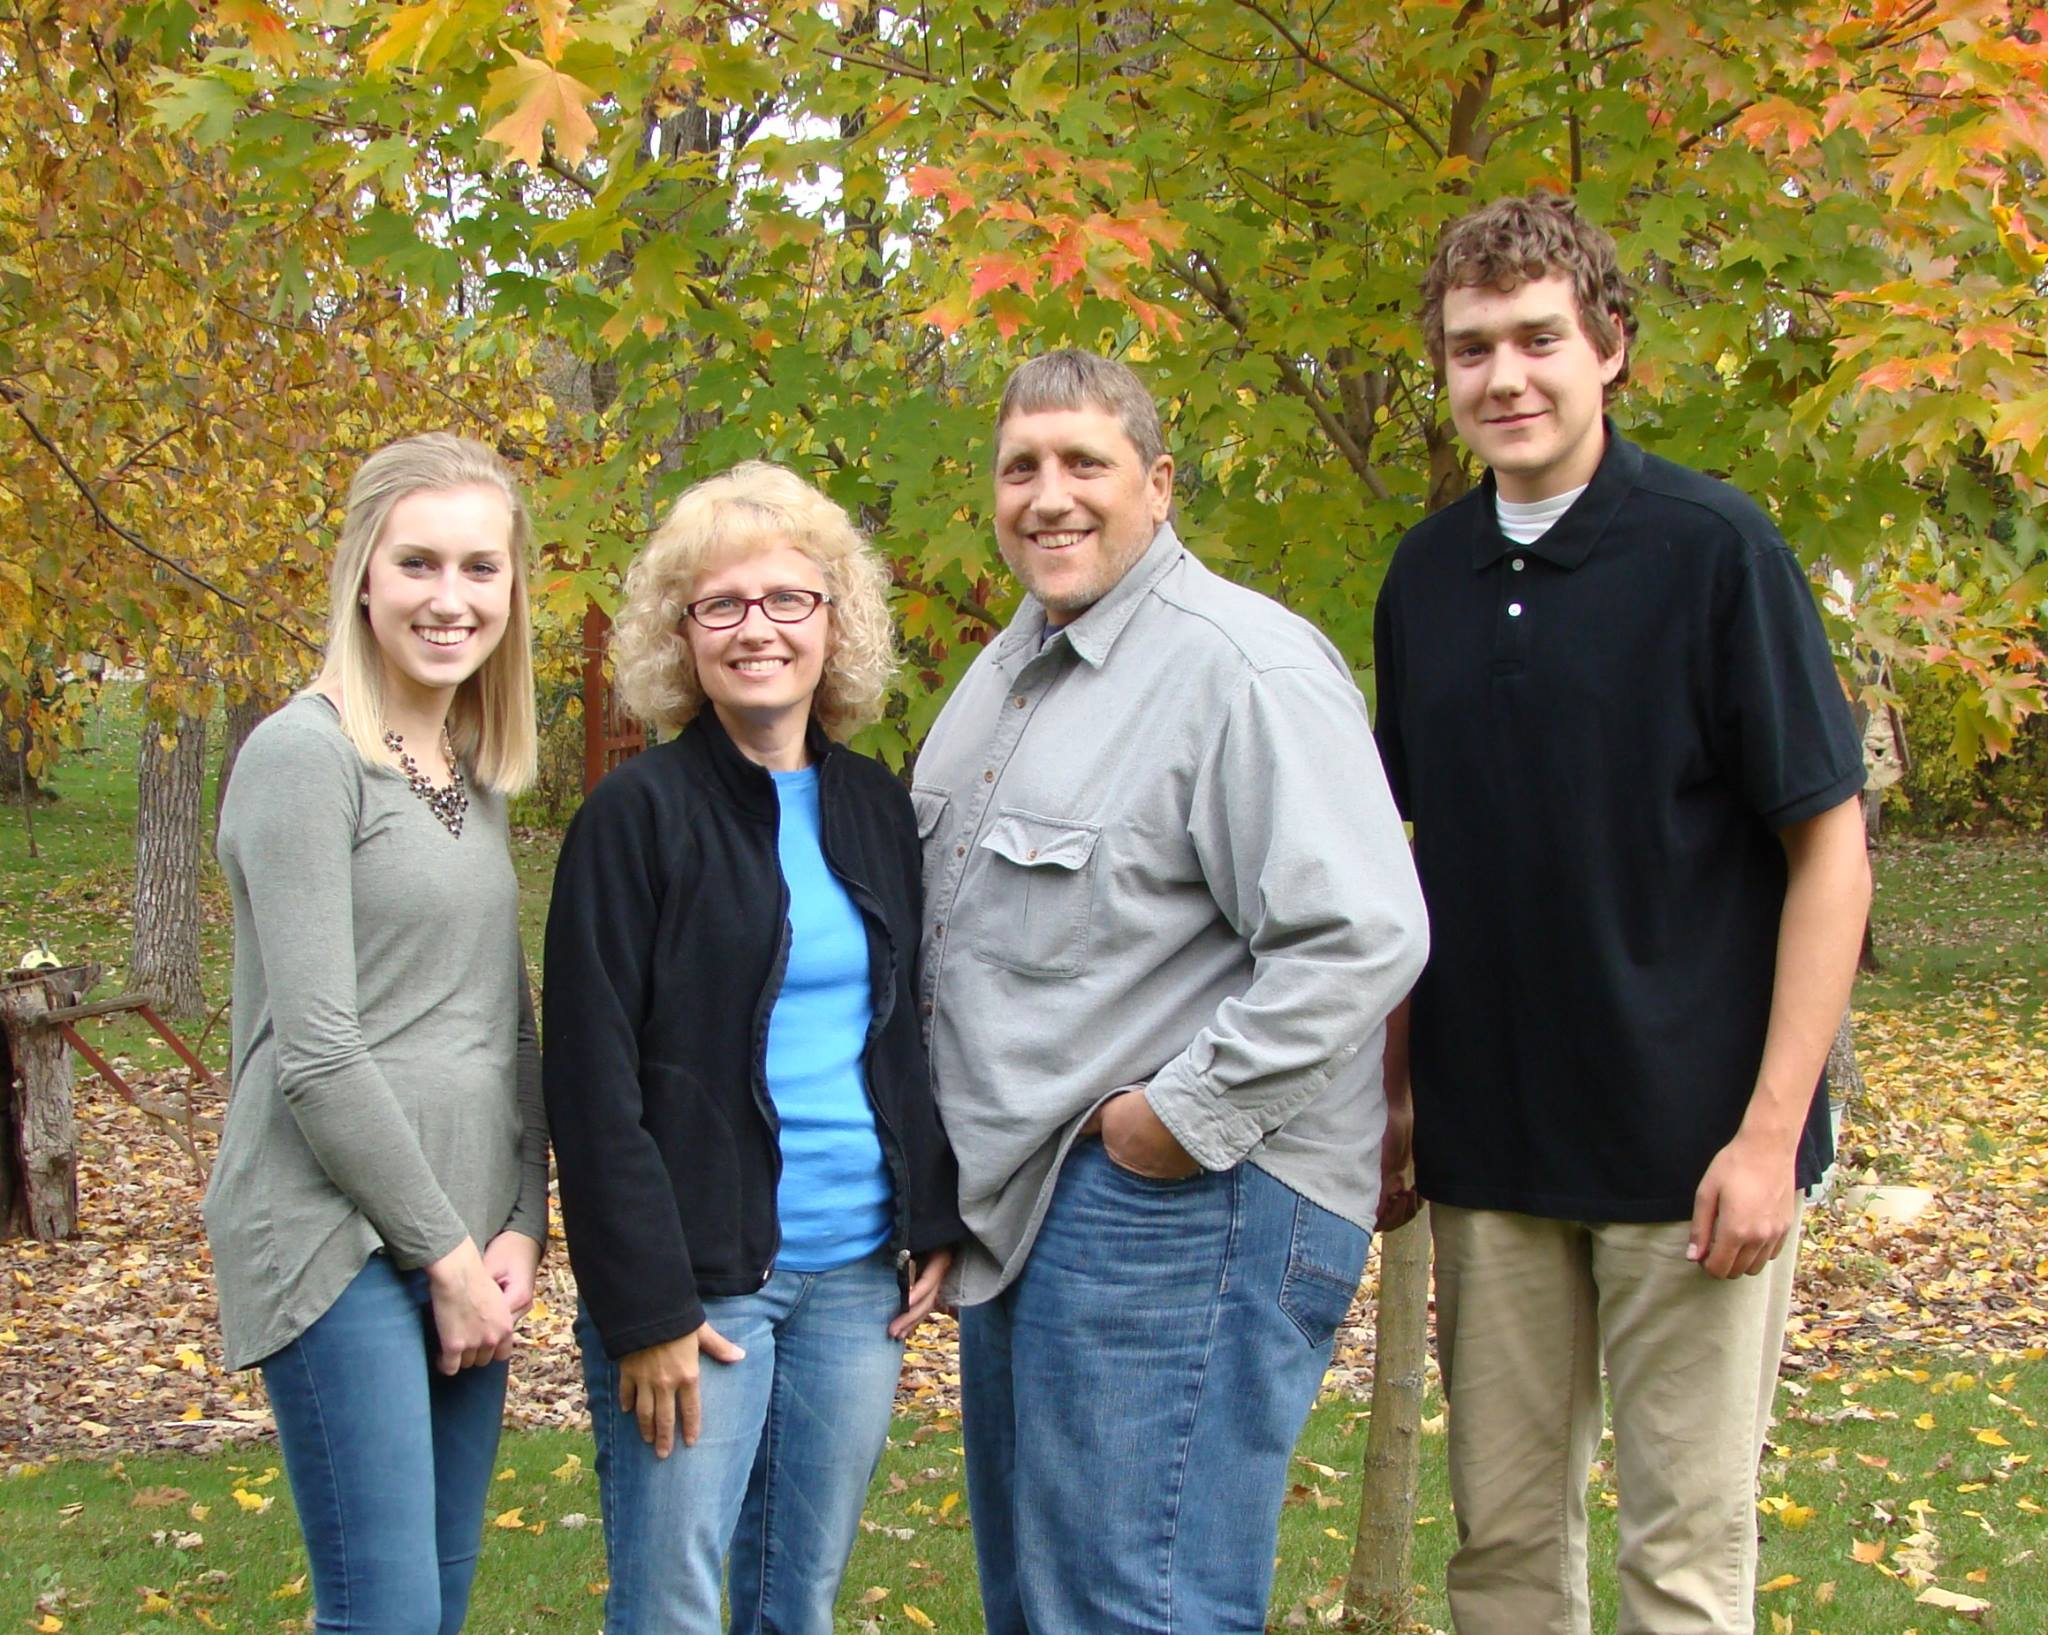 John Bullert Family Picture For Business Cards